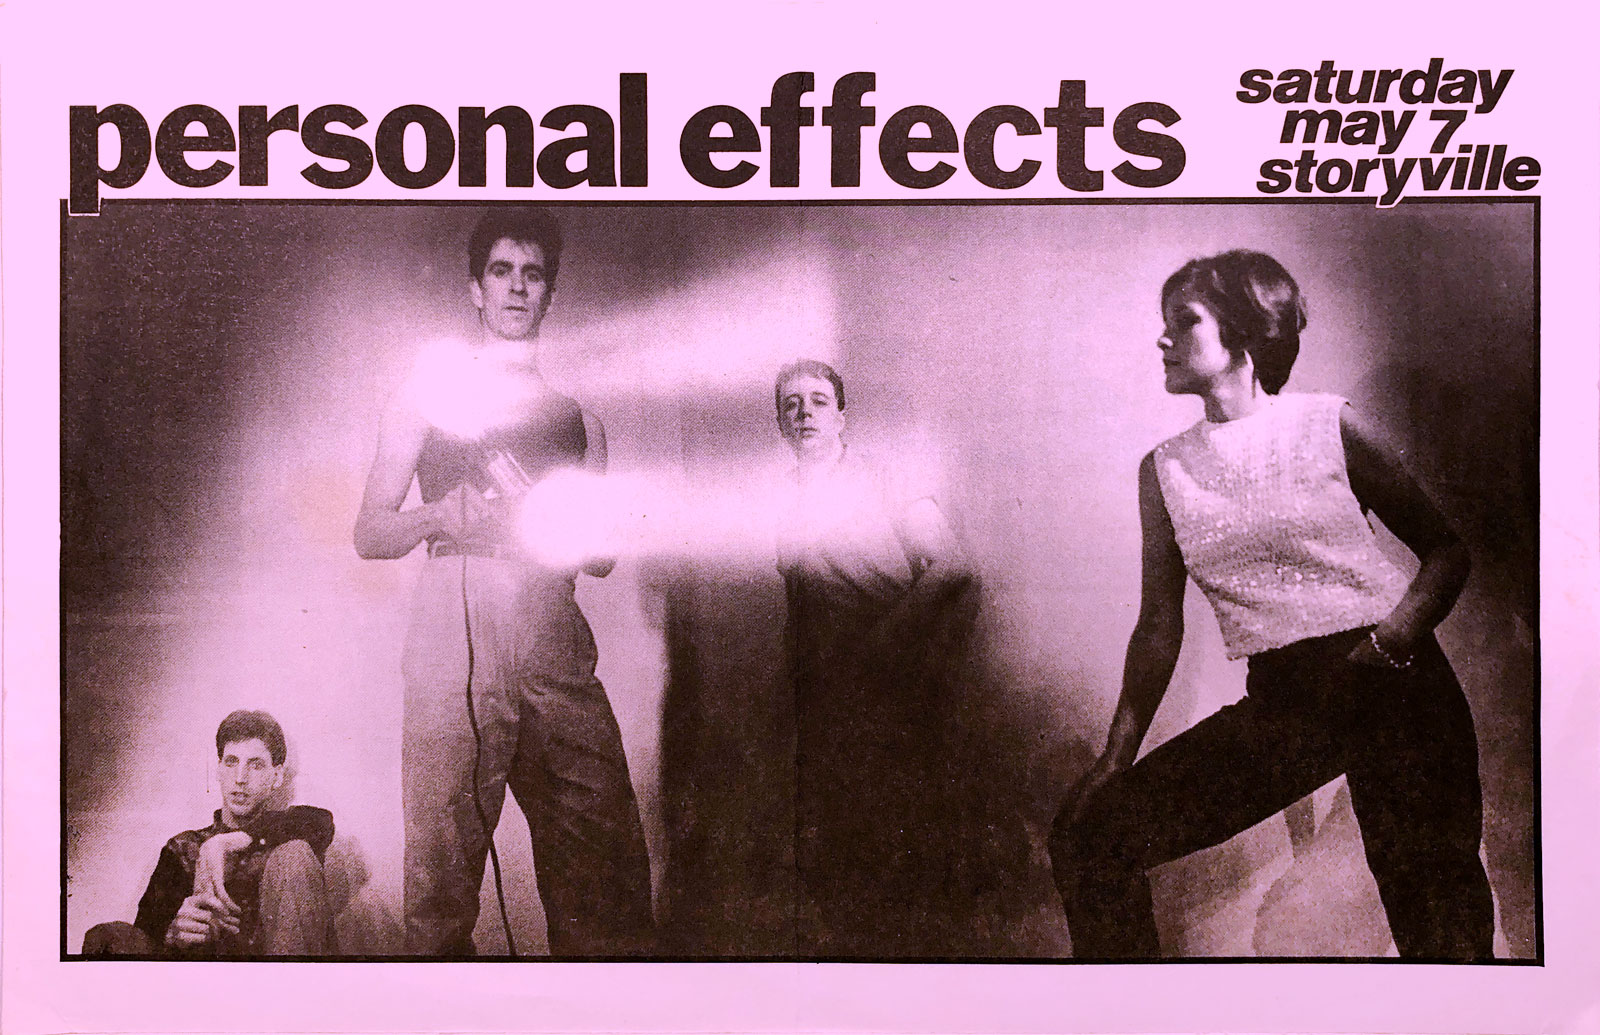 Poster for Personal Effects at Storyville in Boston, Massachusetts on 05.07.1983